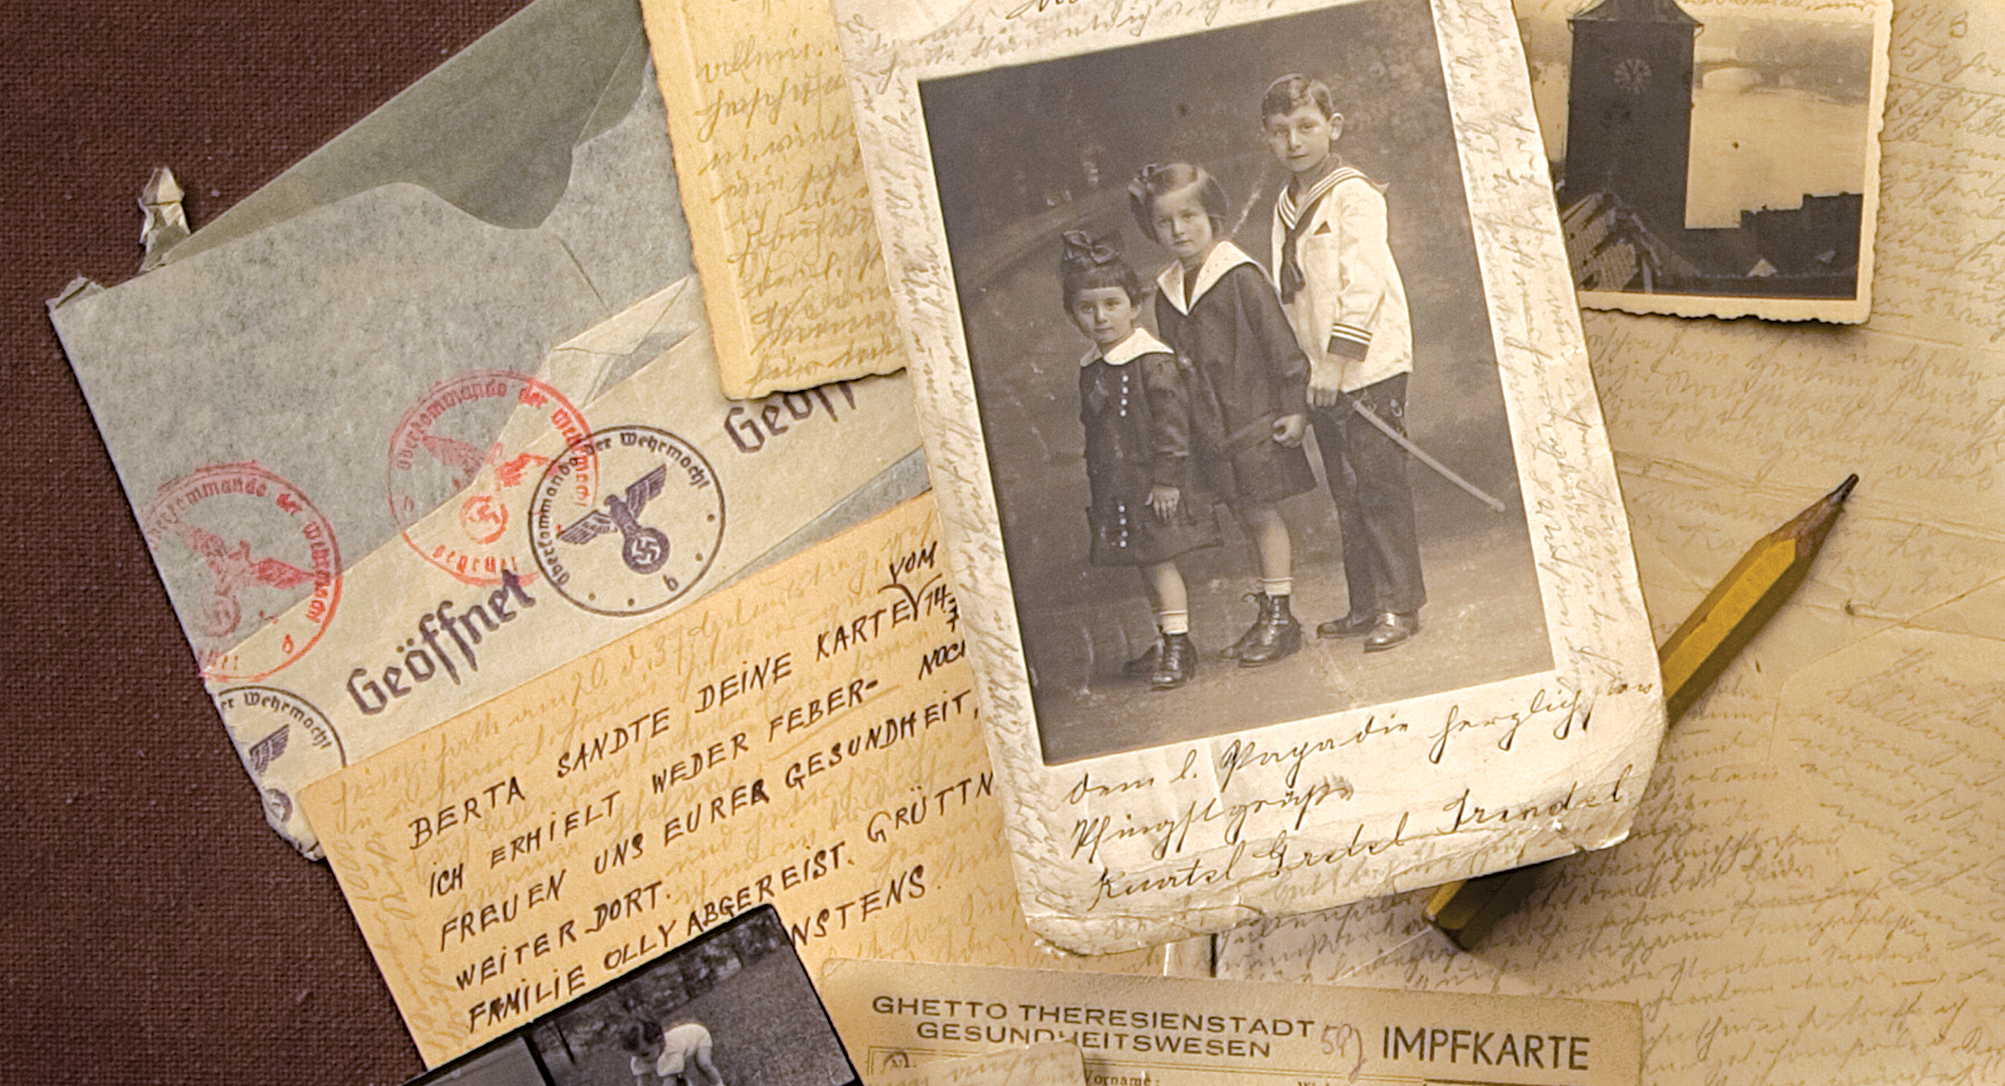 united states holocaust memorial museum holocaust survivor images and letters